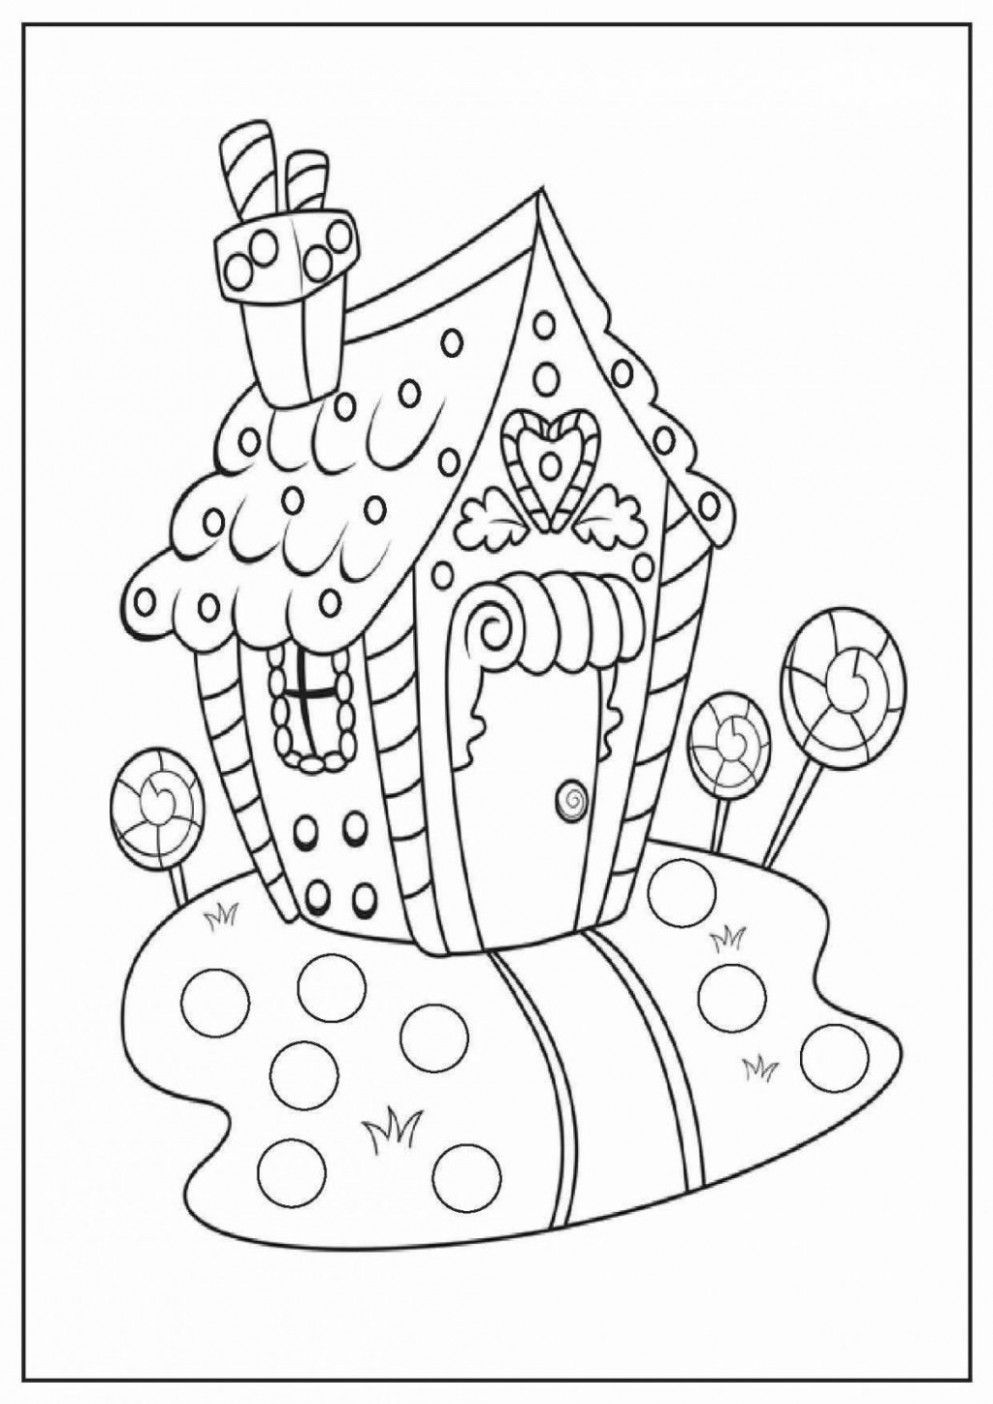 Christmas Coloring Sheets Images Graphic Christmas Coloring Sheets Printable Christmas Coloring Pages Free Christmas Coloring Pages